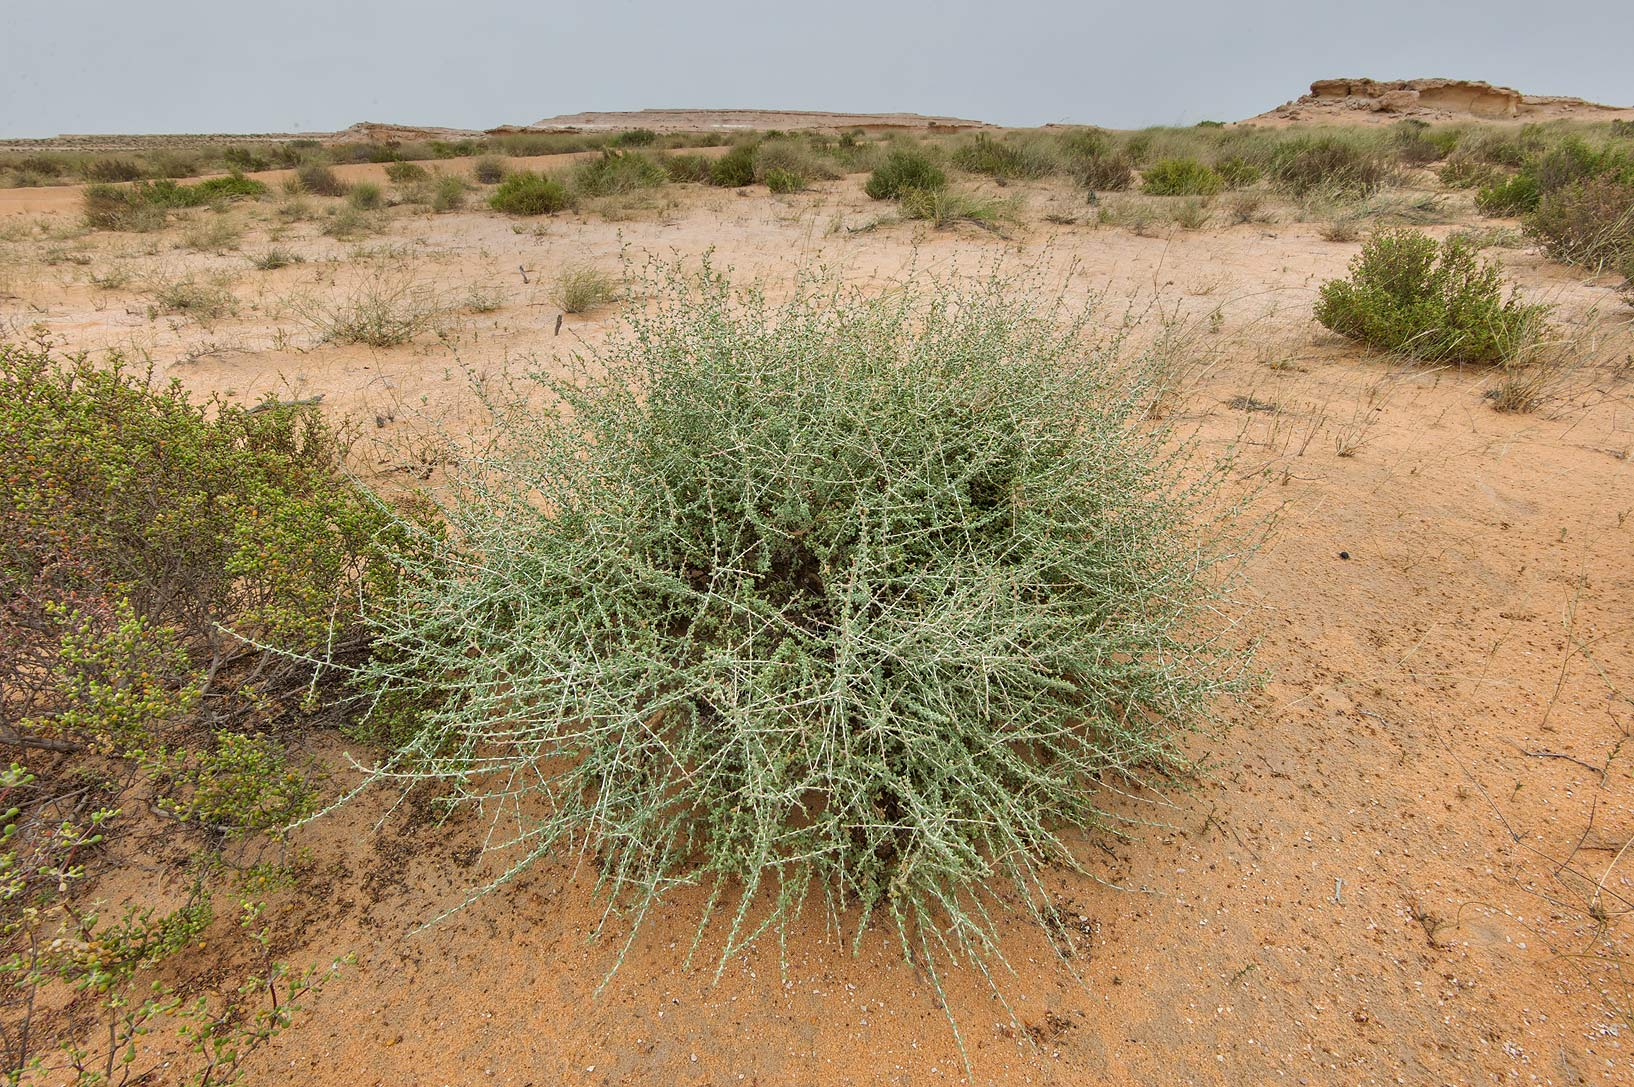 Bush of Traganum nudatum (local name dumran) on...Reserve near Abu Samra. Southern Qatar